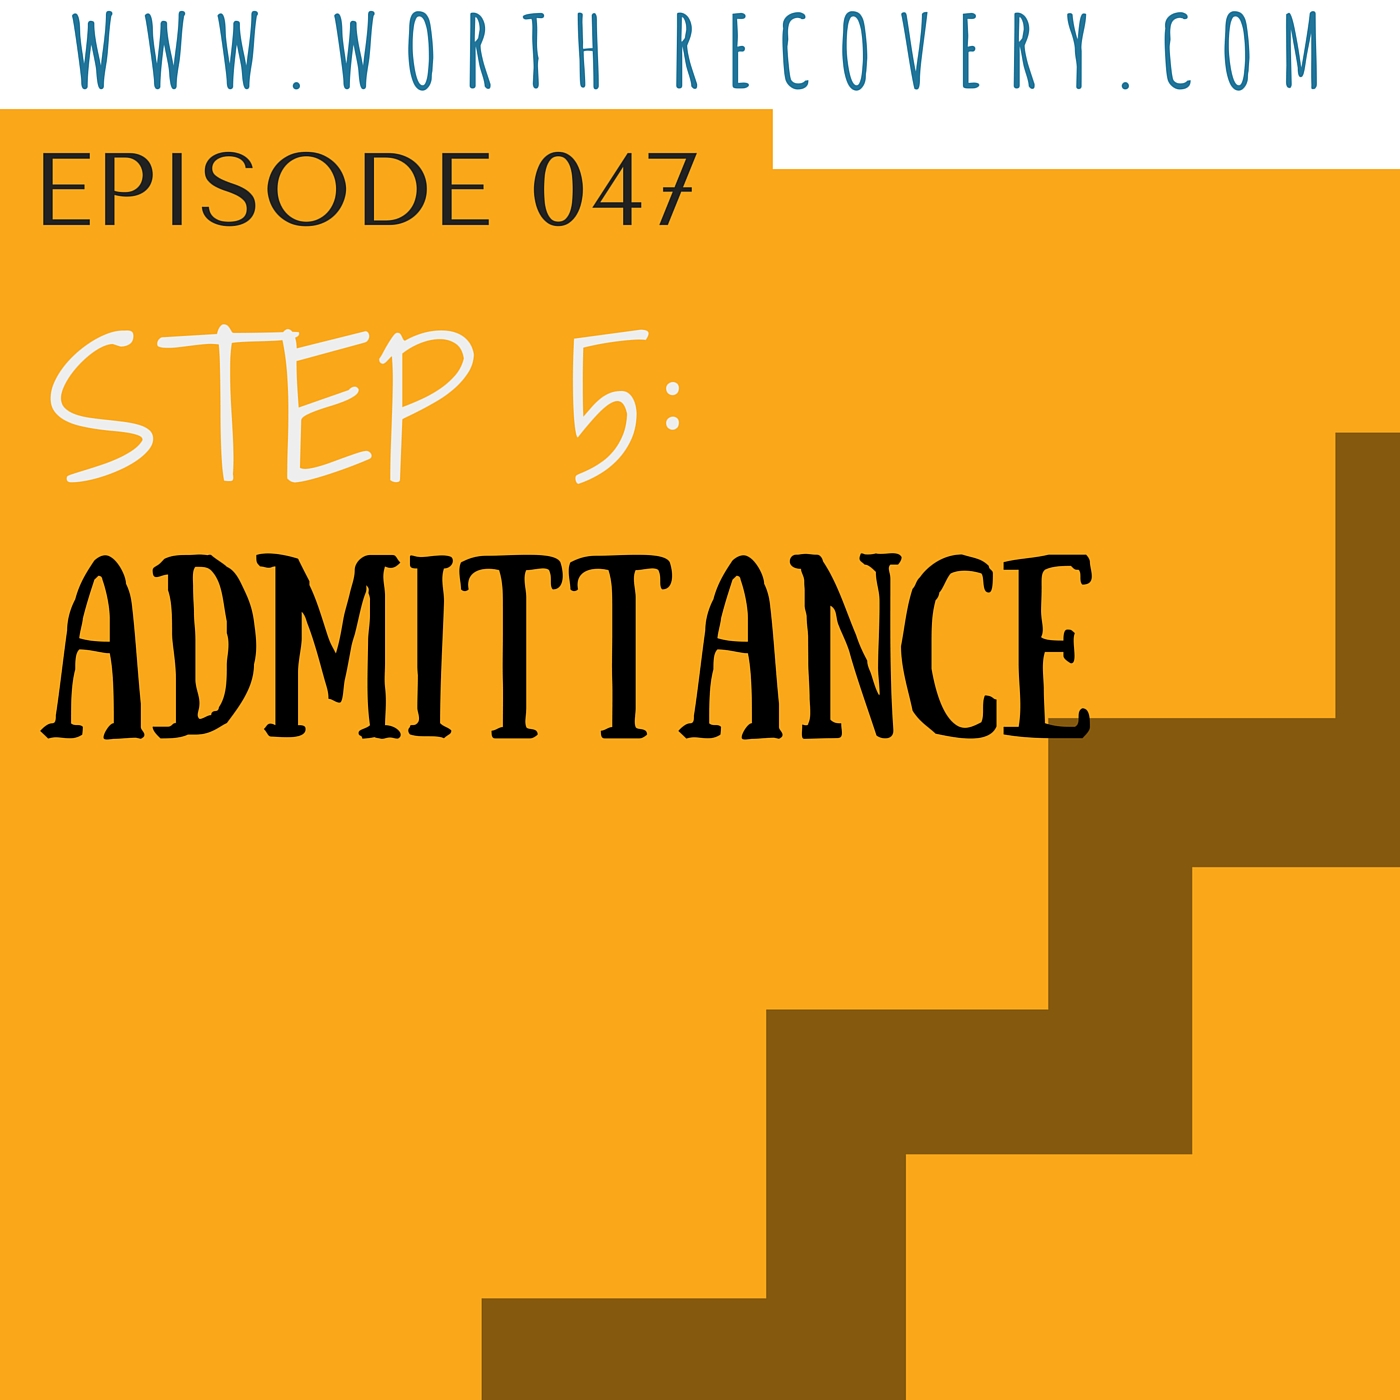 Episode 047: Step 5 - Admittance